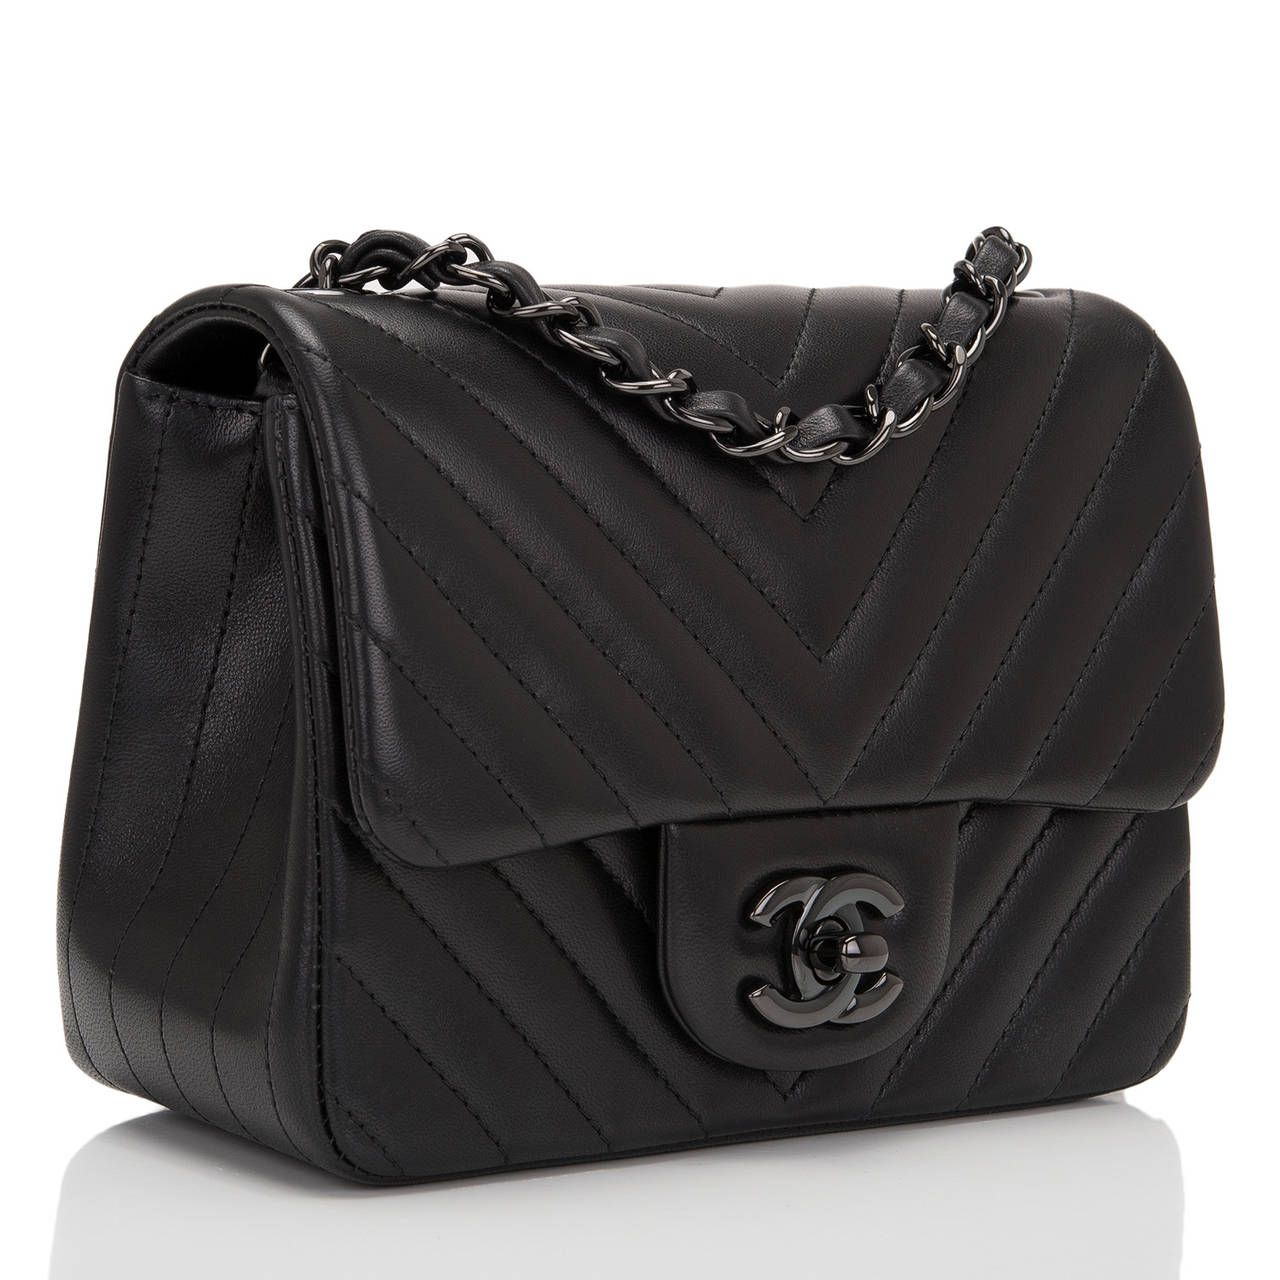 da6b63f430ae Chanel So Black Chevron Mini Flap Bag | From a collection of rare vintage  shoulder bags